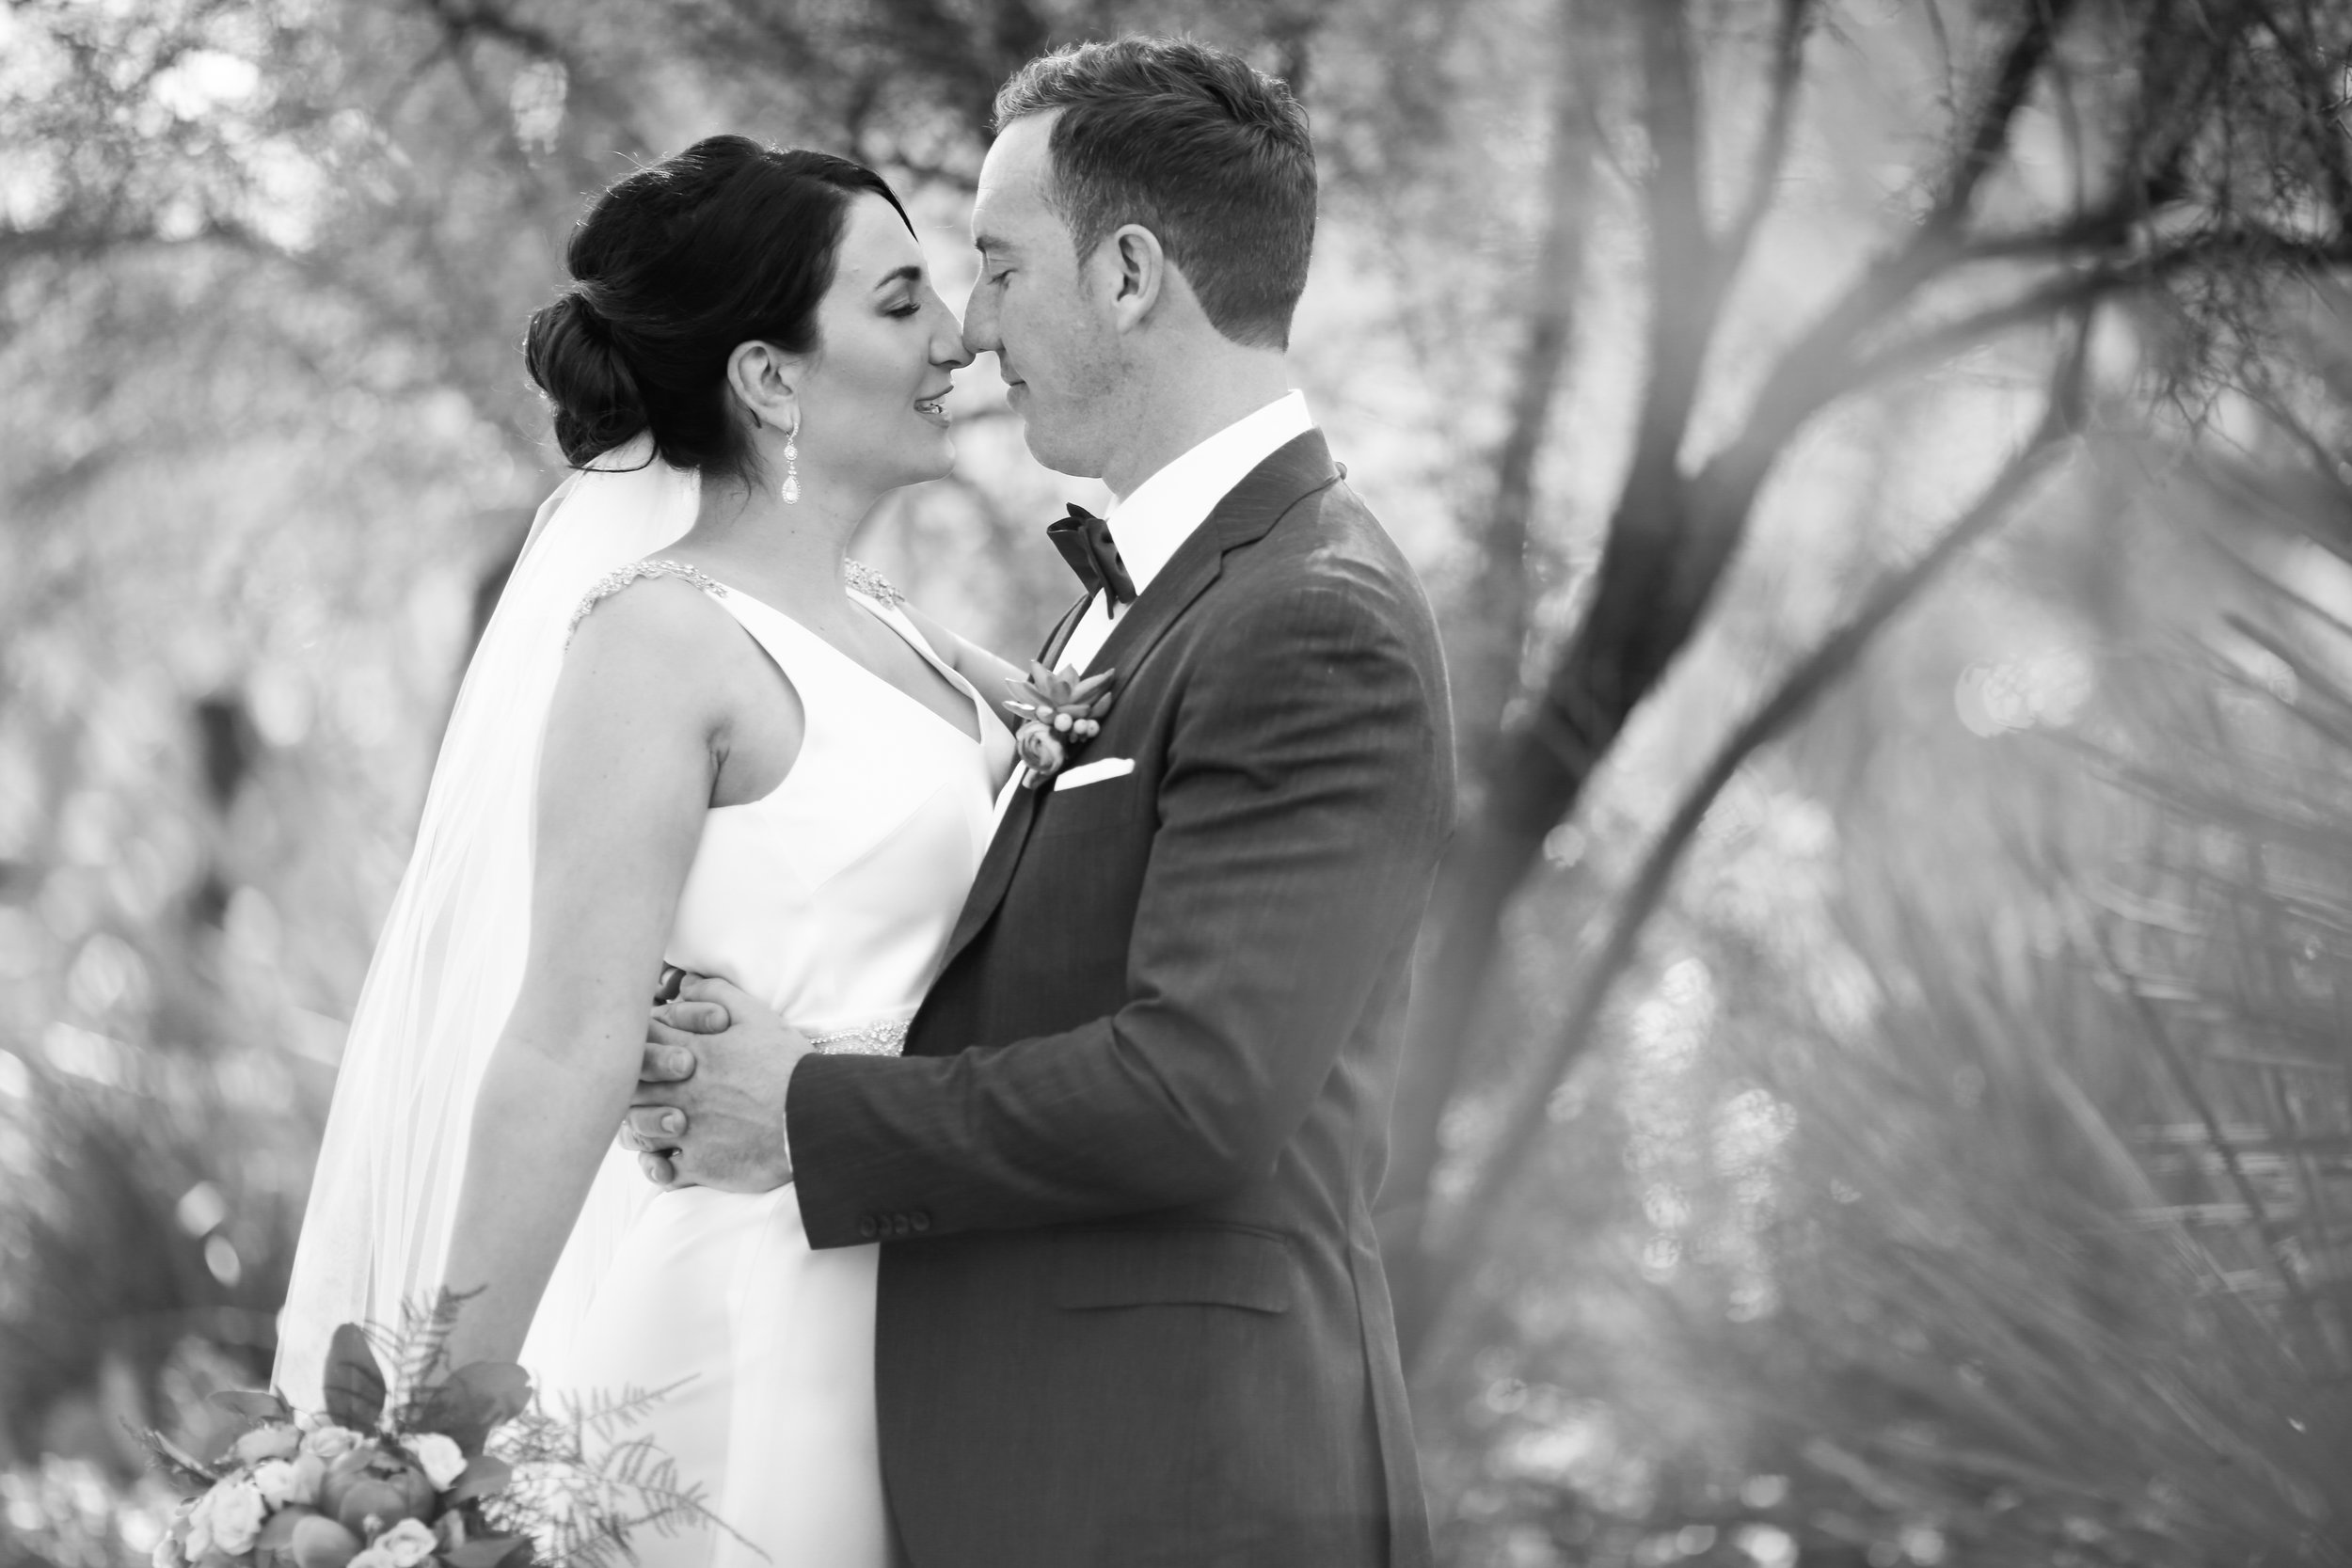 10 first look bride and groom bride and groom candid pictures bride and groom poses Mod Wed Photography Life Design Events .jpg